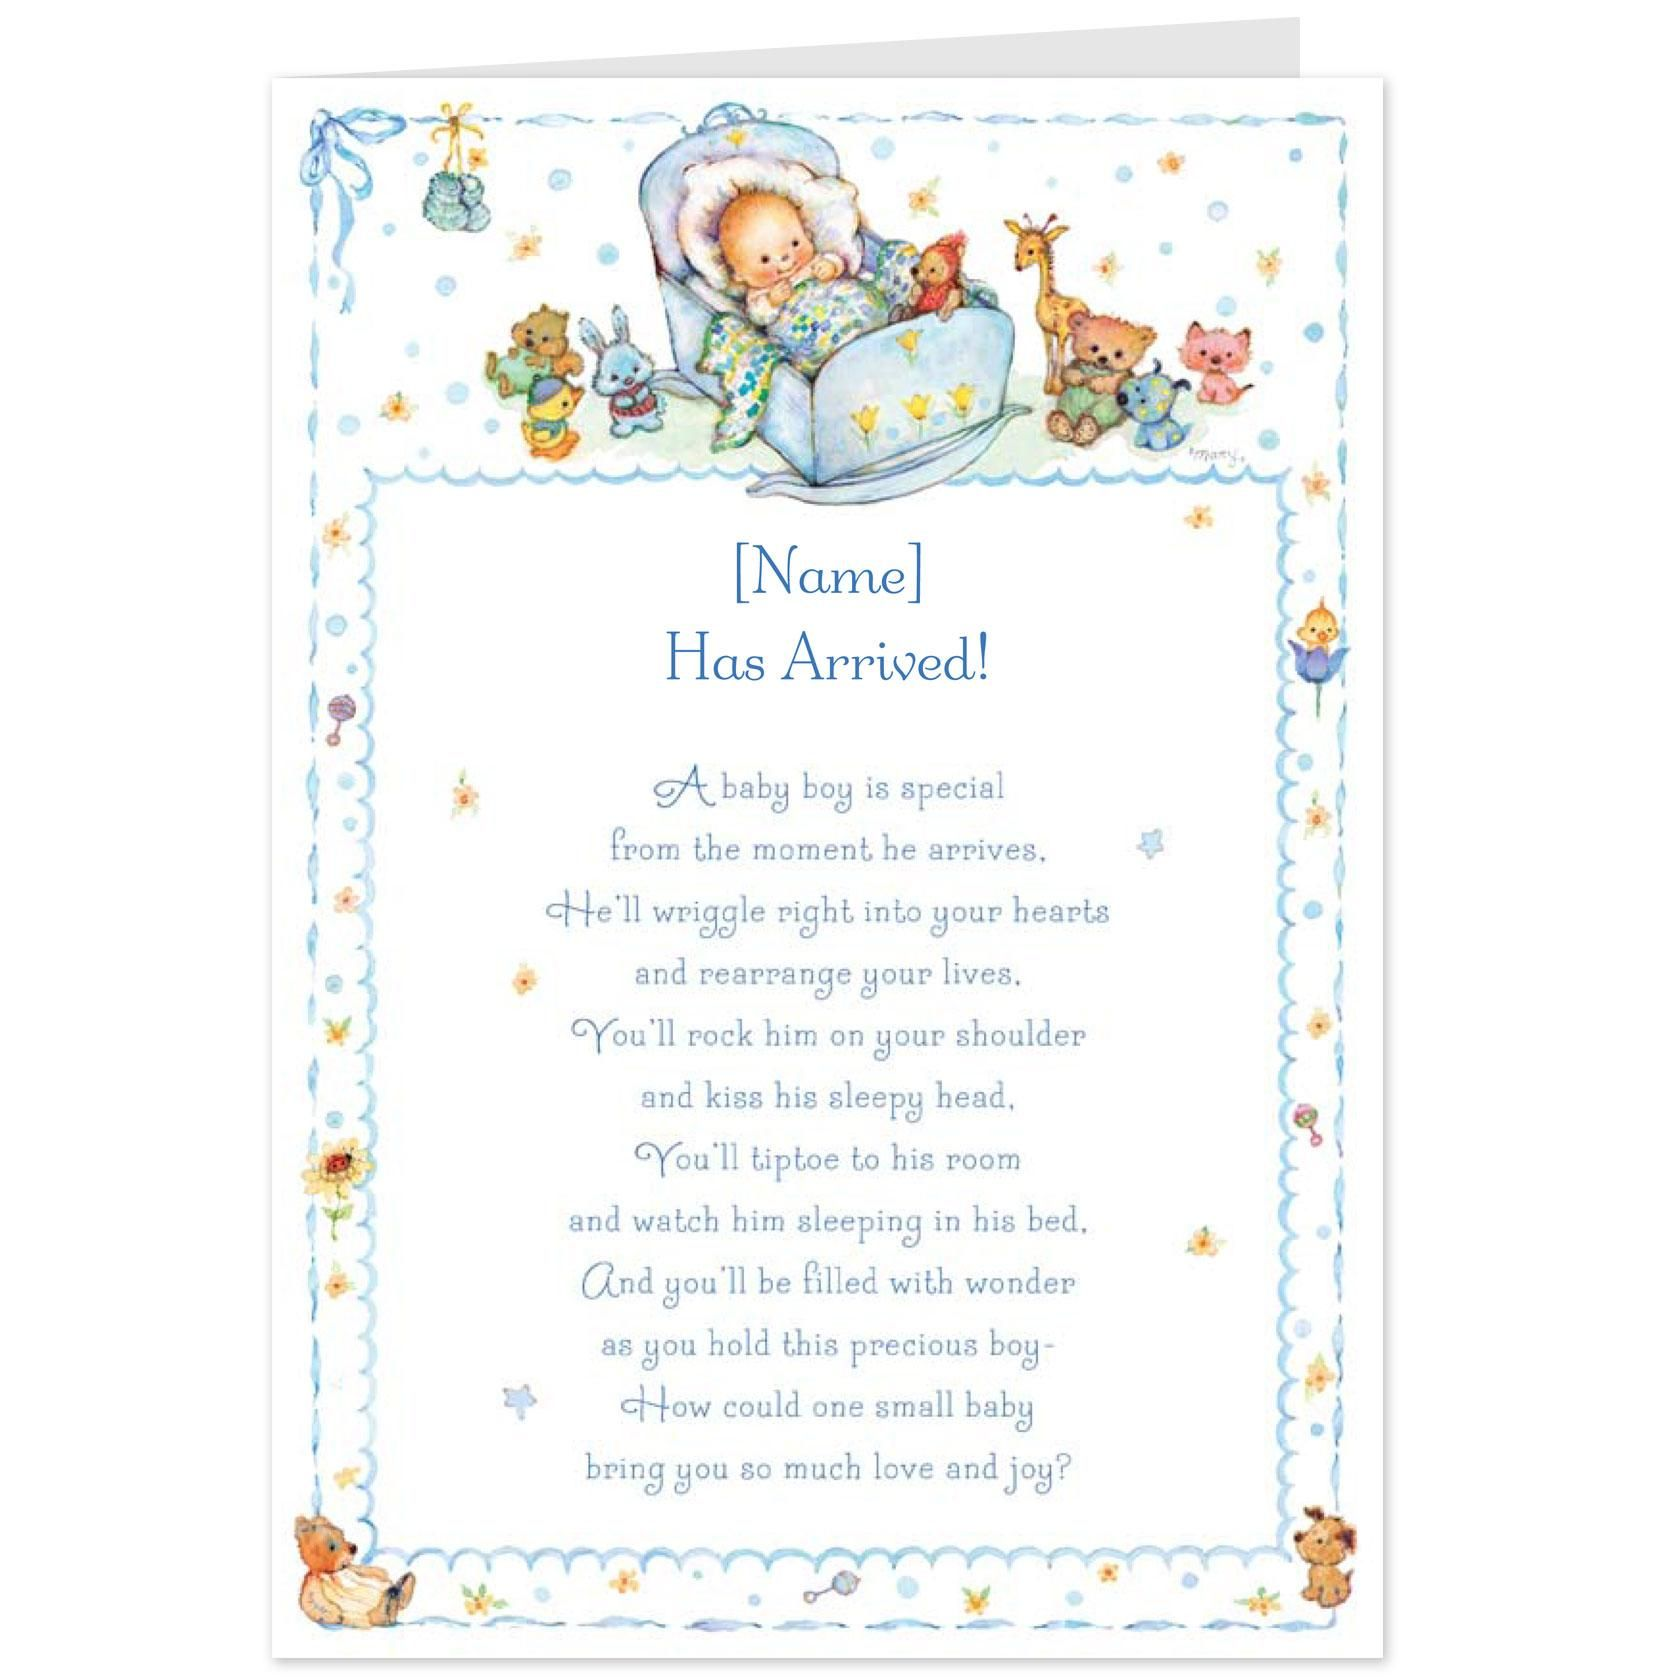 Pin By Brenda Mulhausen On Party Baby Shower Pinterest Baby Boy